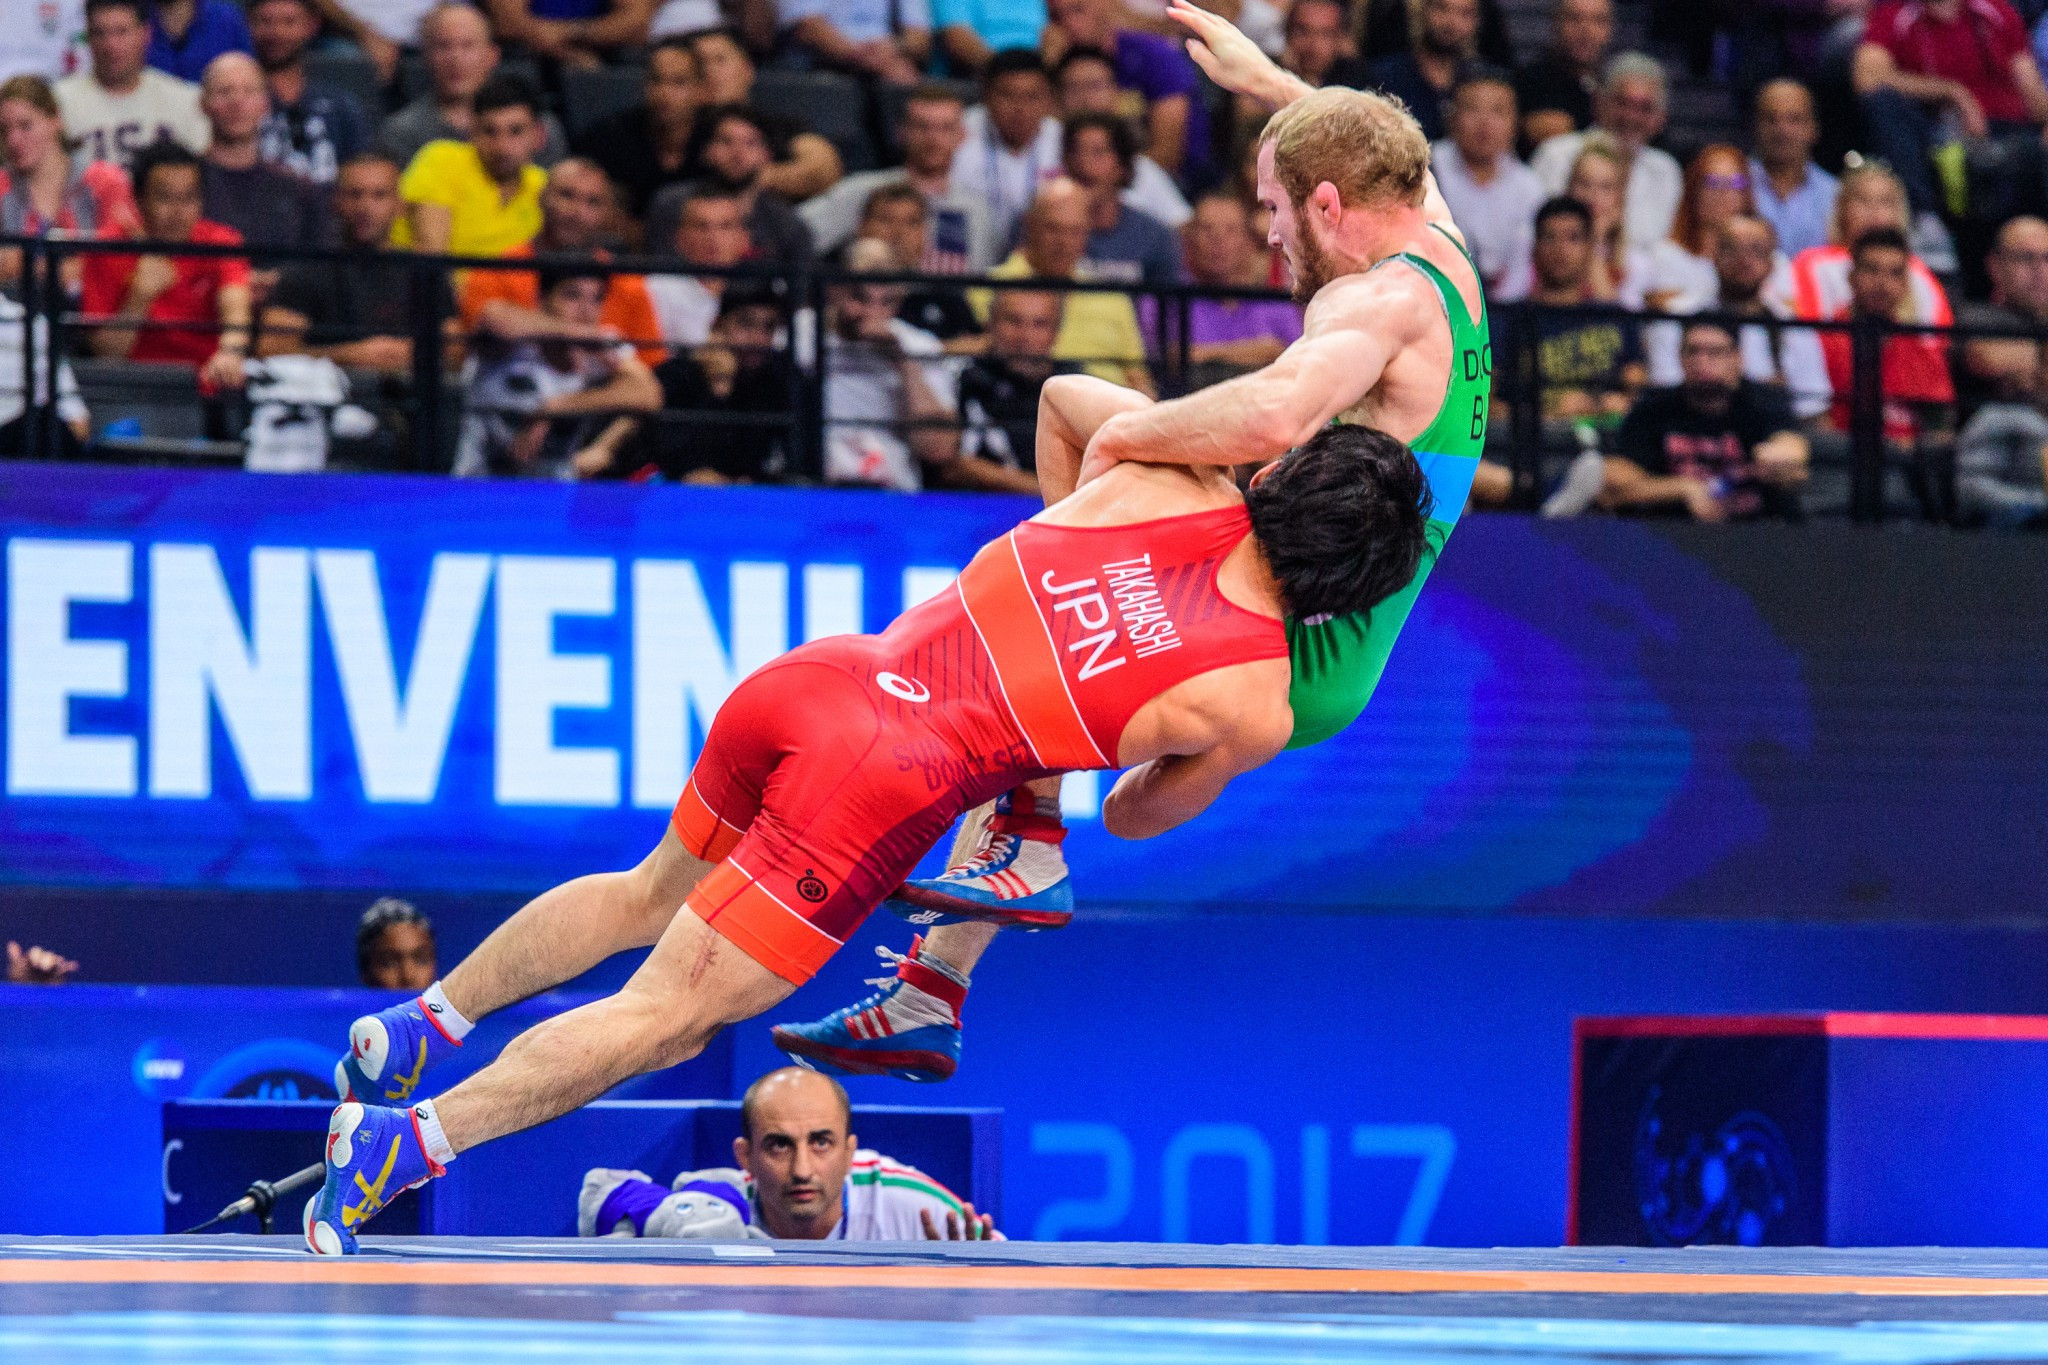 UWW Wrestling World Championships 2017: Day five of competition